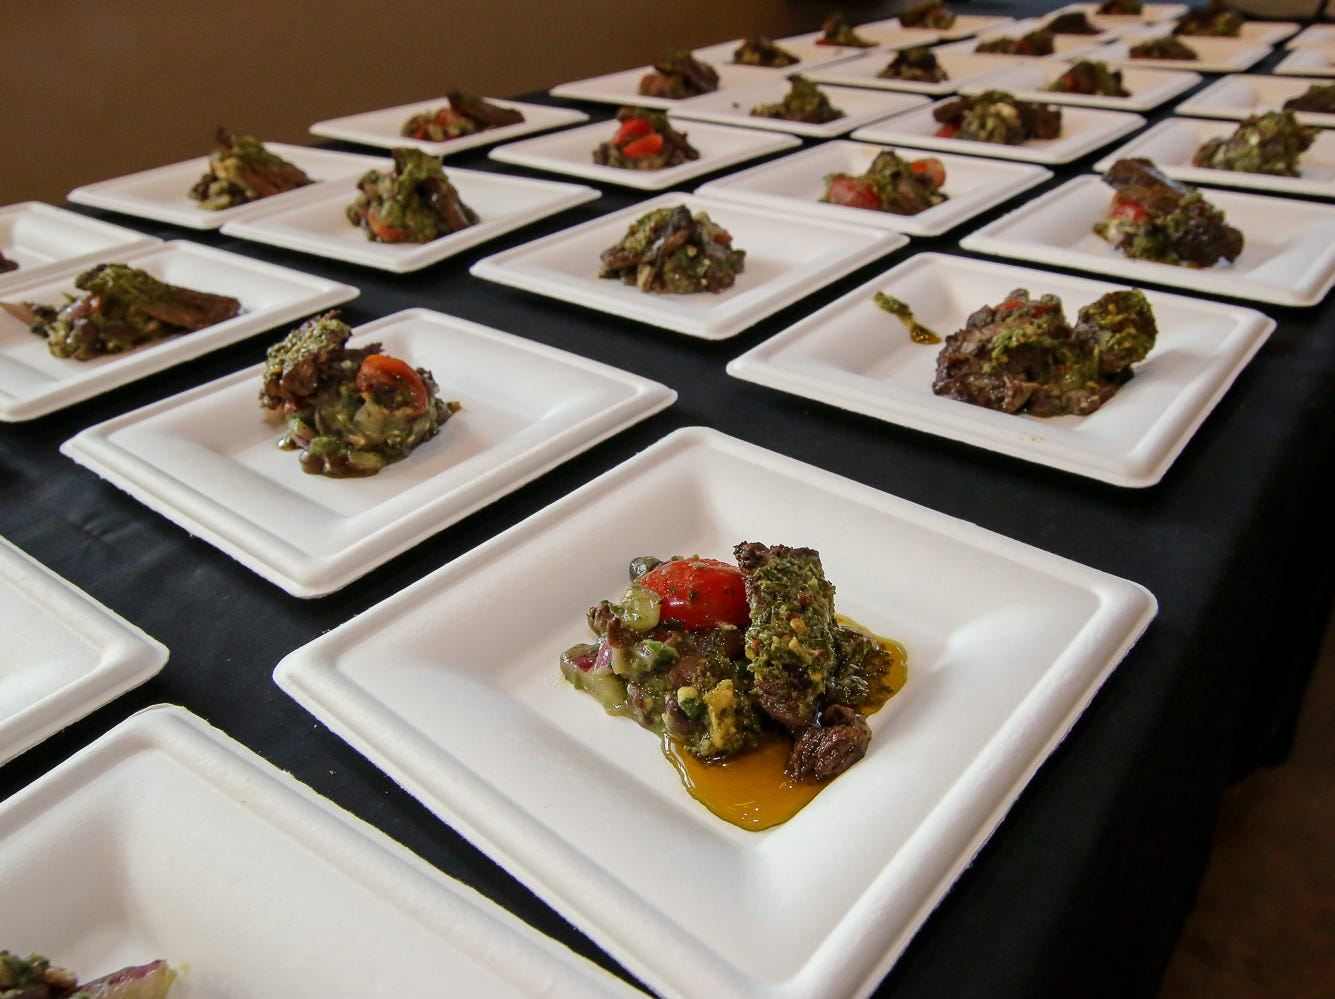 Ever'man Grocery and Cafe offered an Argentinian skirt steak and black bean chimichurri salad and a choice of four wines during the Pensacola News Journal's 5th annual Tastemakers restaurant crawl on Saturday, August 25, 2018. The two-night event included about a dozen restaurants that each featured a food and drink item reoresenting a specific country, such as the United States, Mexico, Argentina and more.